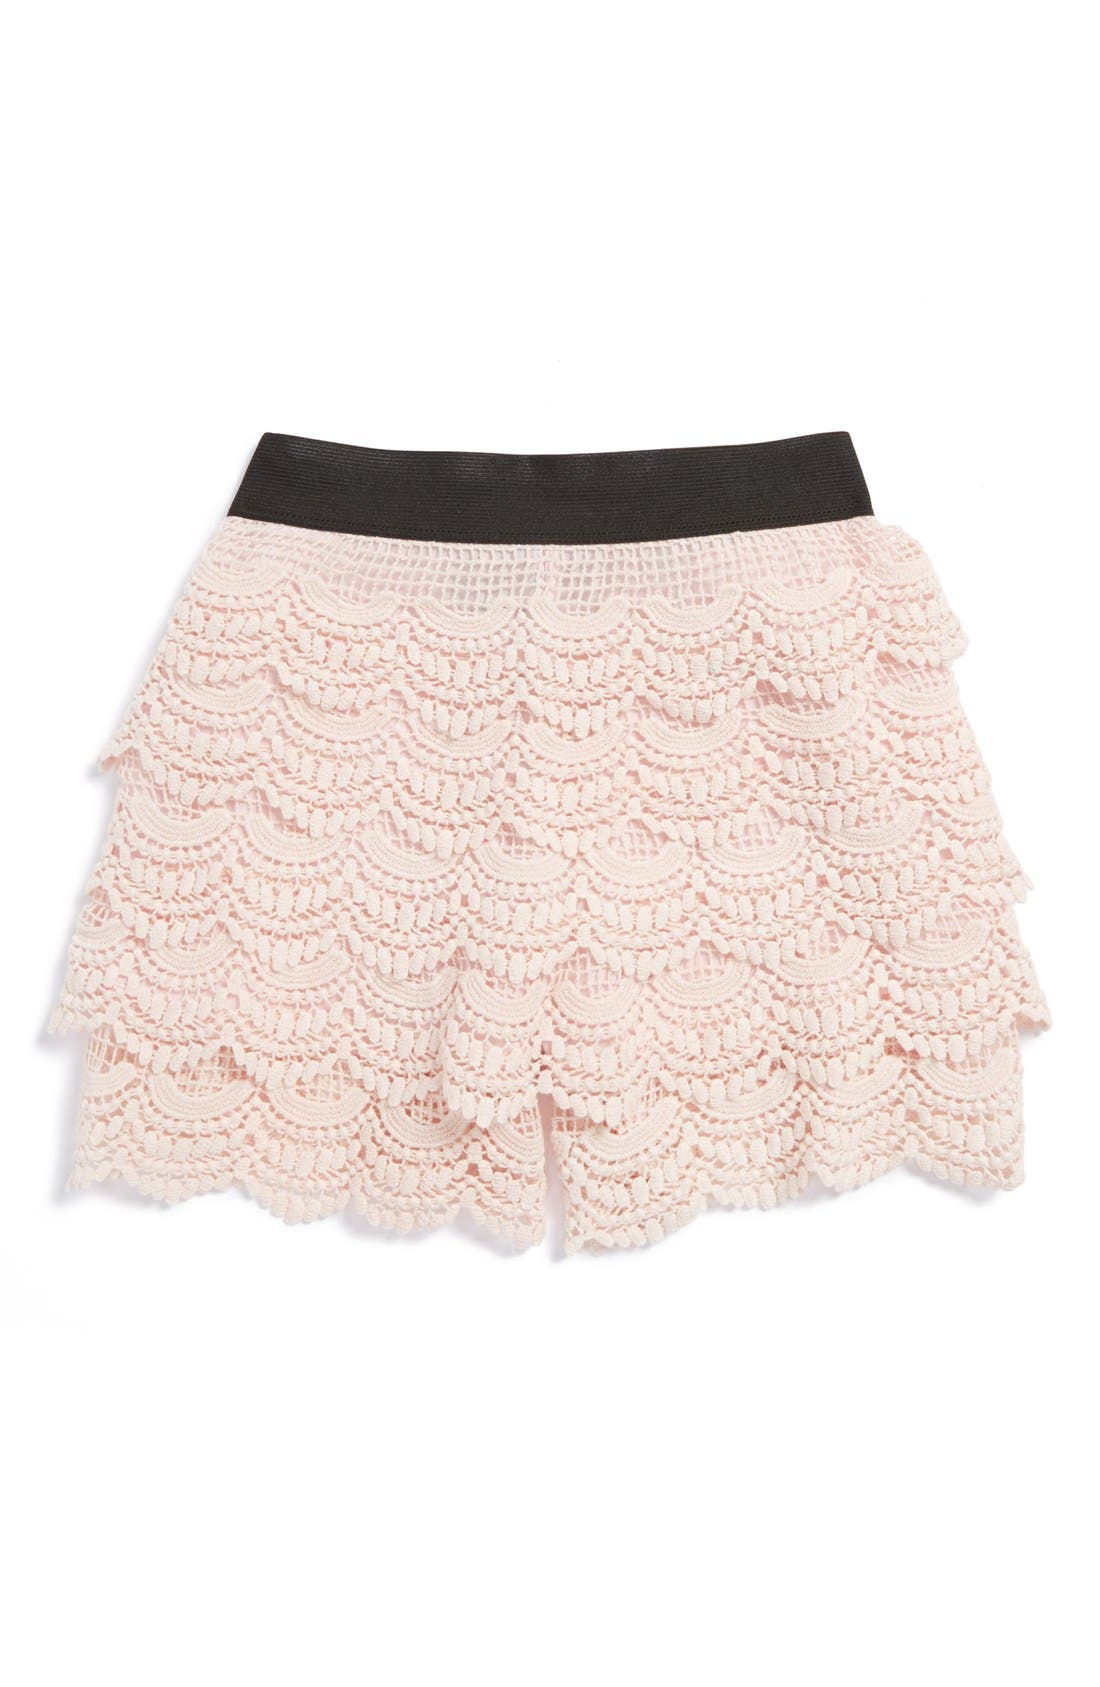 Alternate Image 1 Selected - Un Deux Trois Lacy Crochet Shorts (Big Girls)